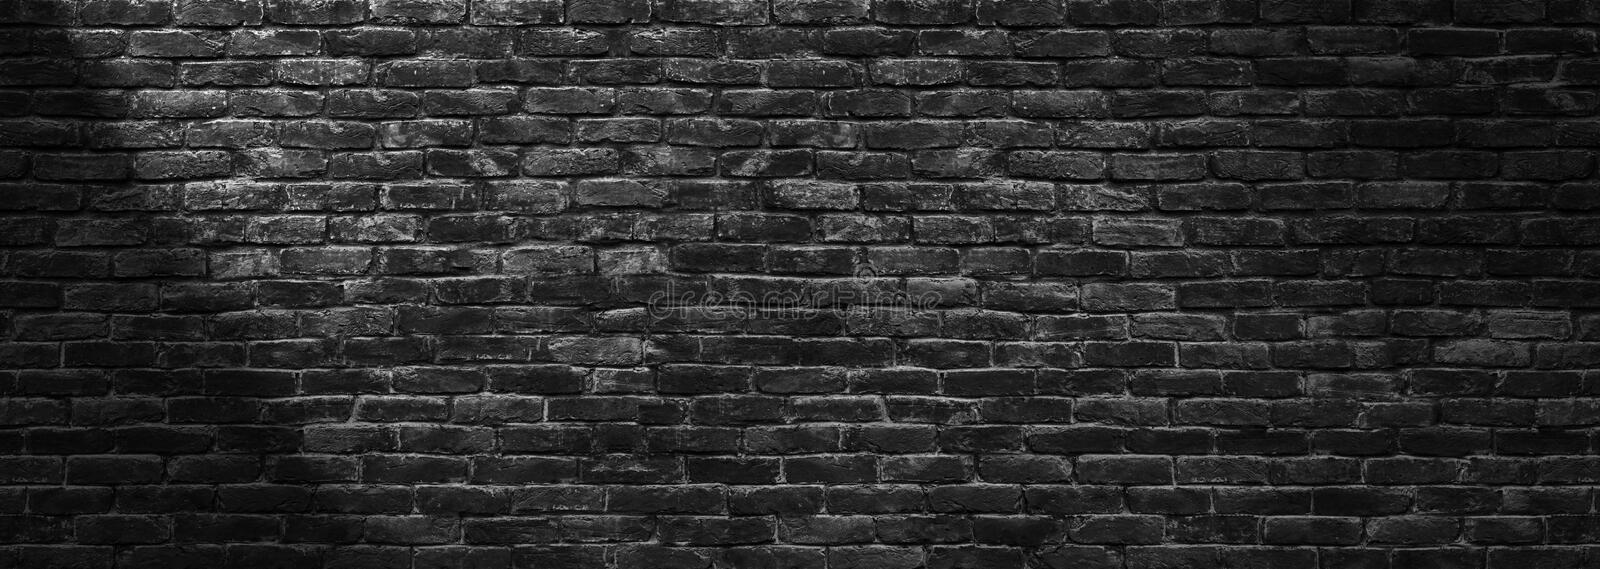 Black brick wall panoramic background for design stock photo image download black brick wall panoramic background for design stock photo image of material panorama voltagebd Images